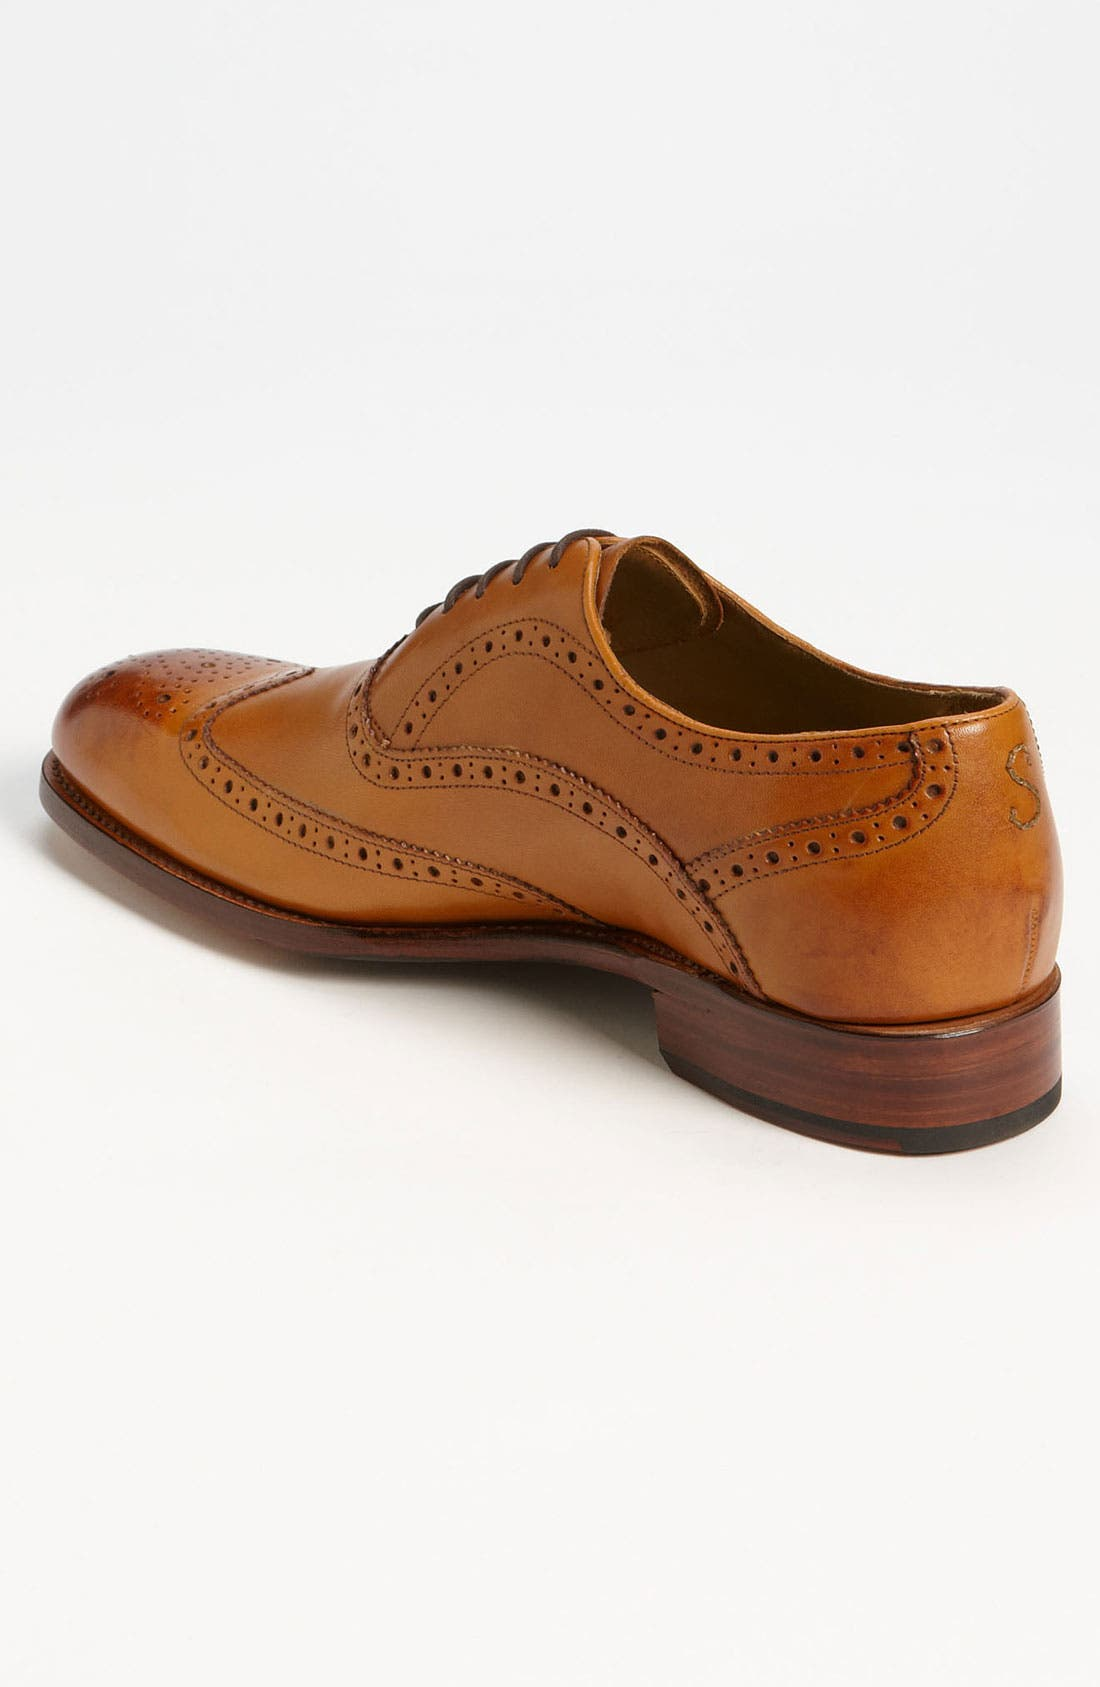 Alternate Image 2  - Oliver Sweeney 'Mellin' Wingtip Oxford